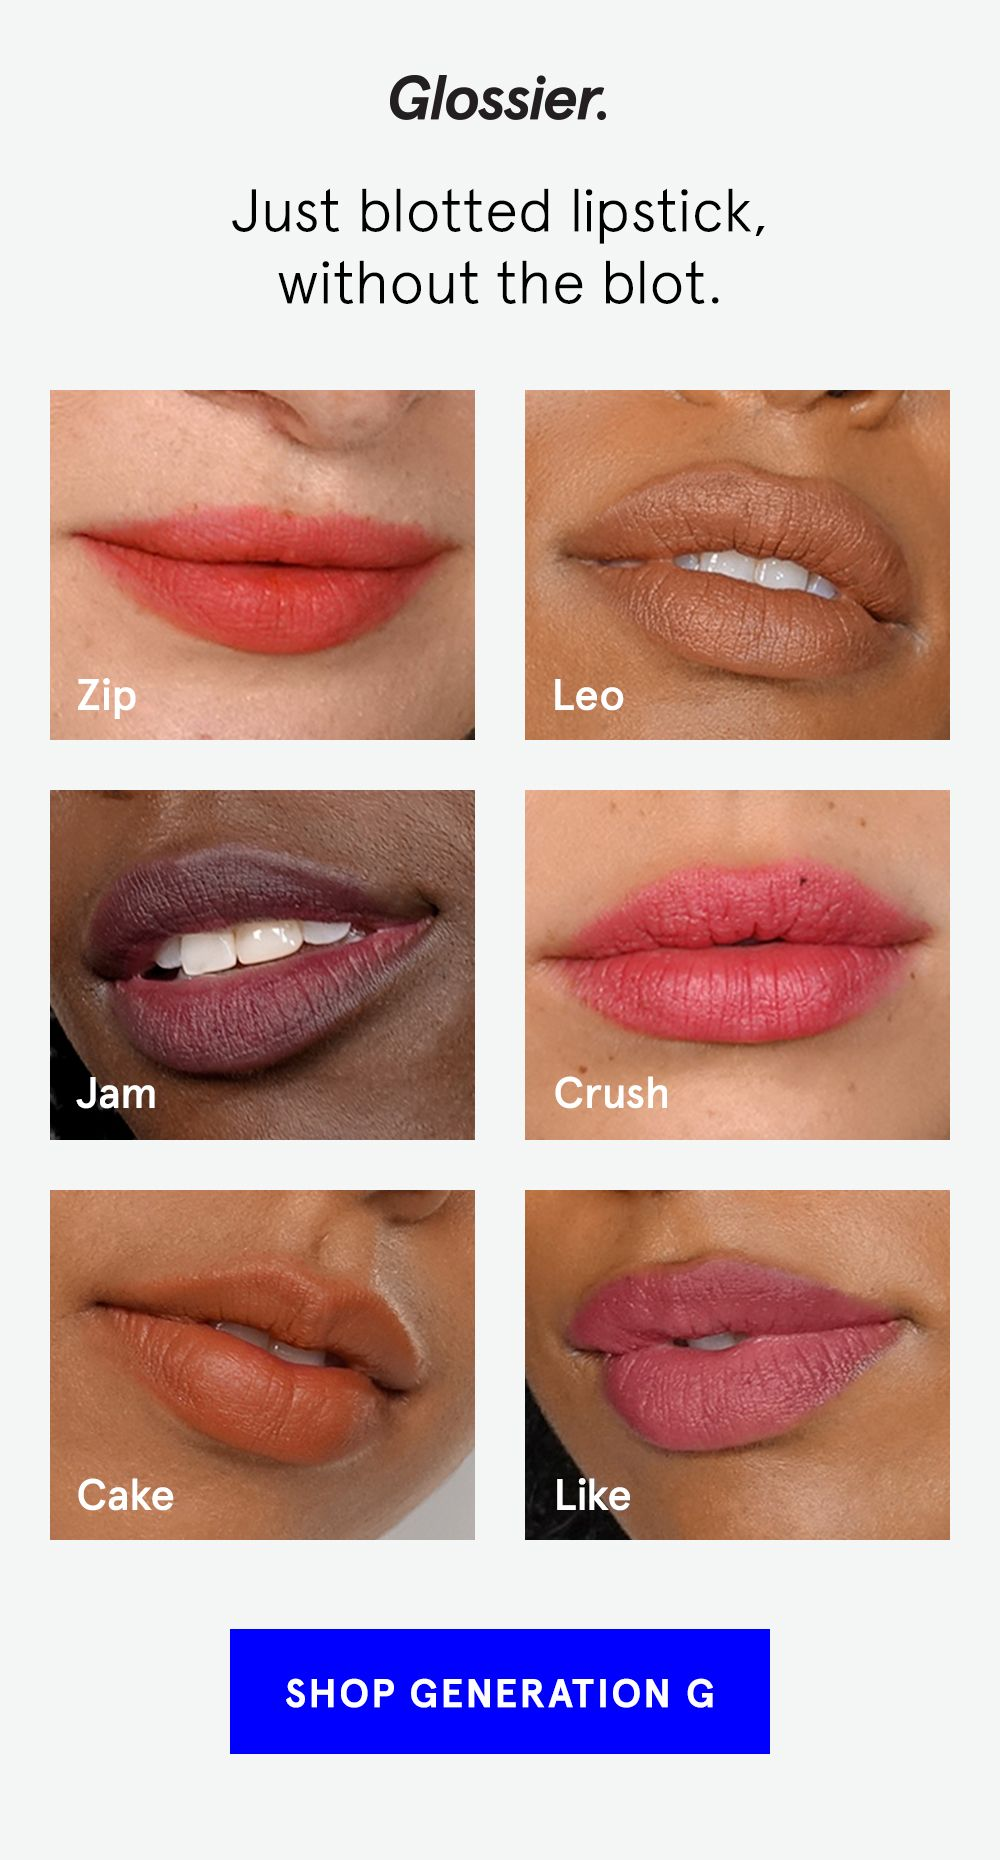 Generation G Is A New Kind Of Lip Color That Gives The Look And